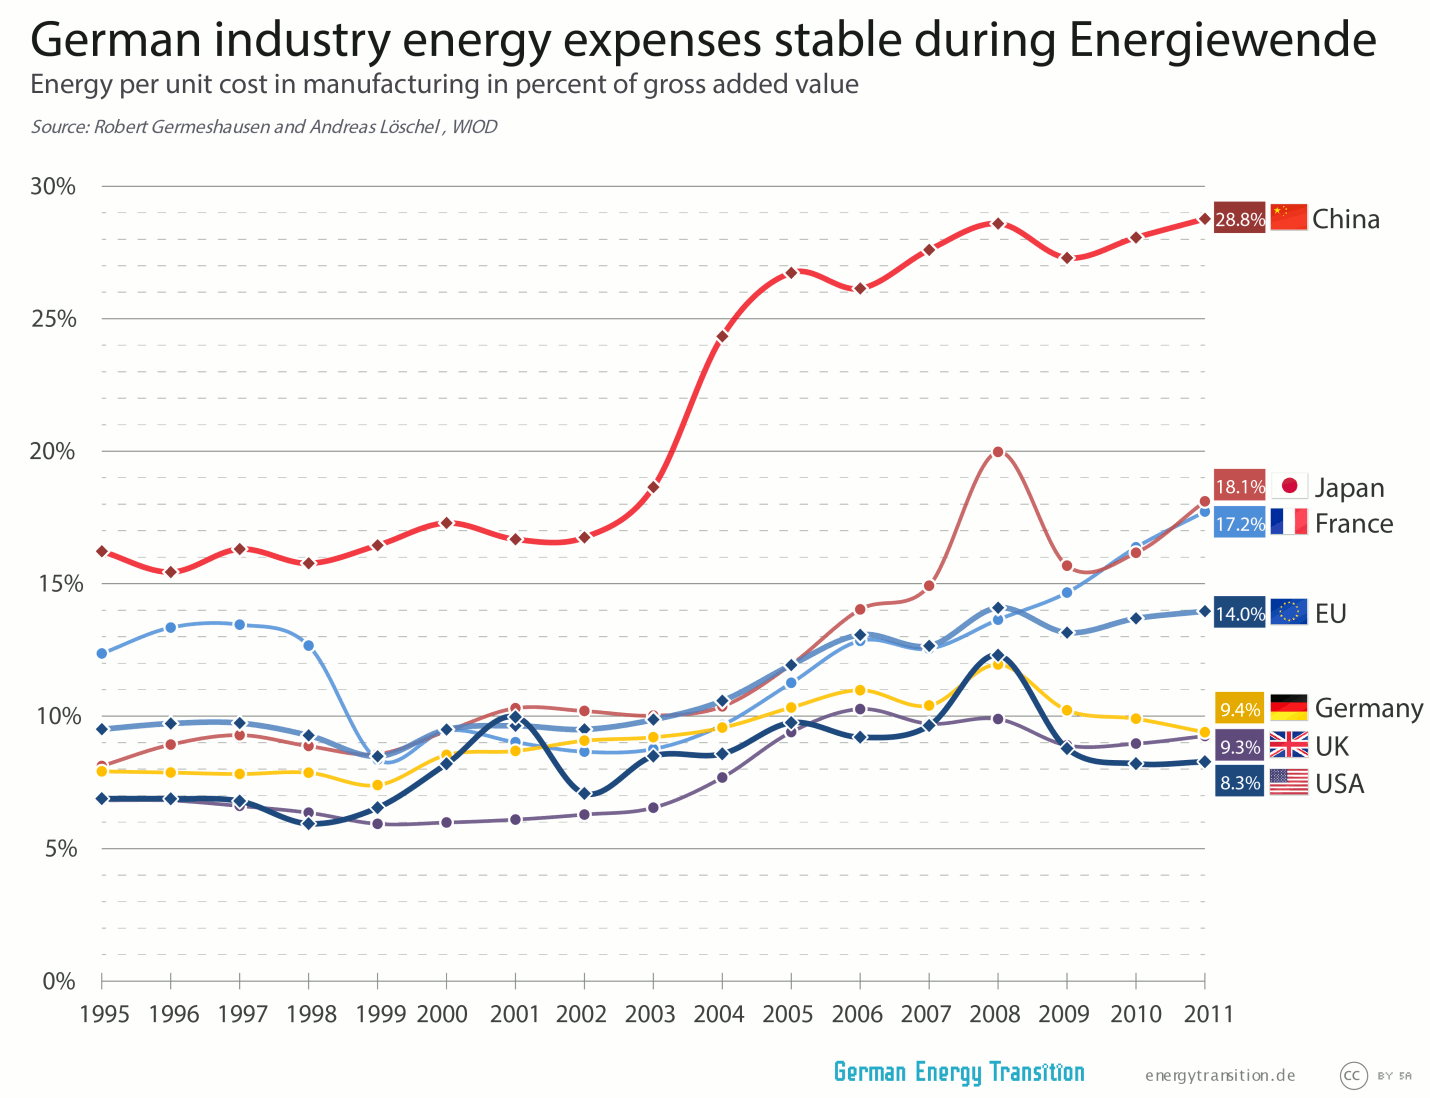 German energy industry expenses stable during Energiewende